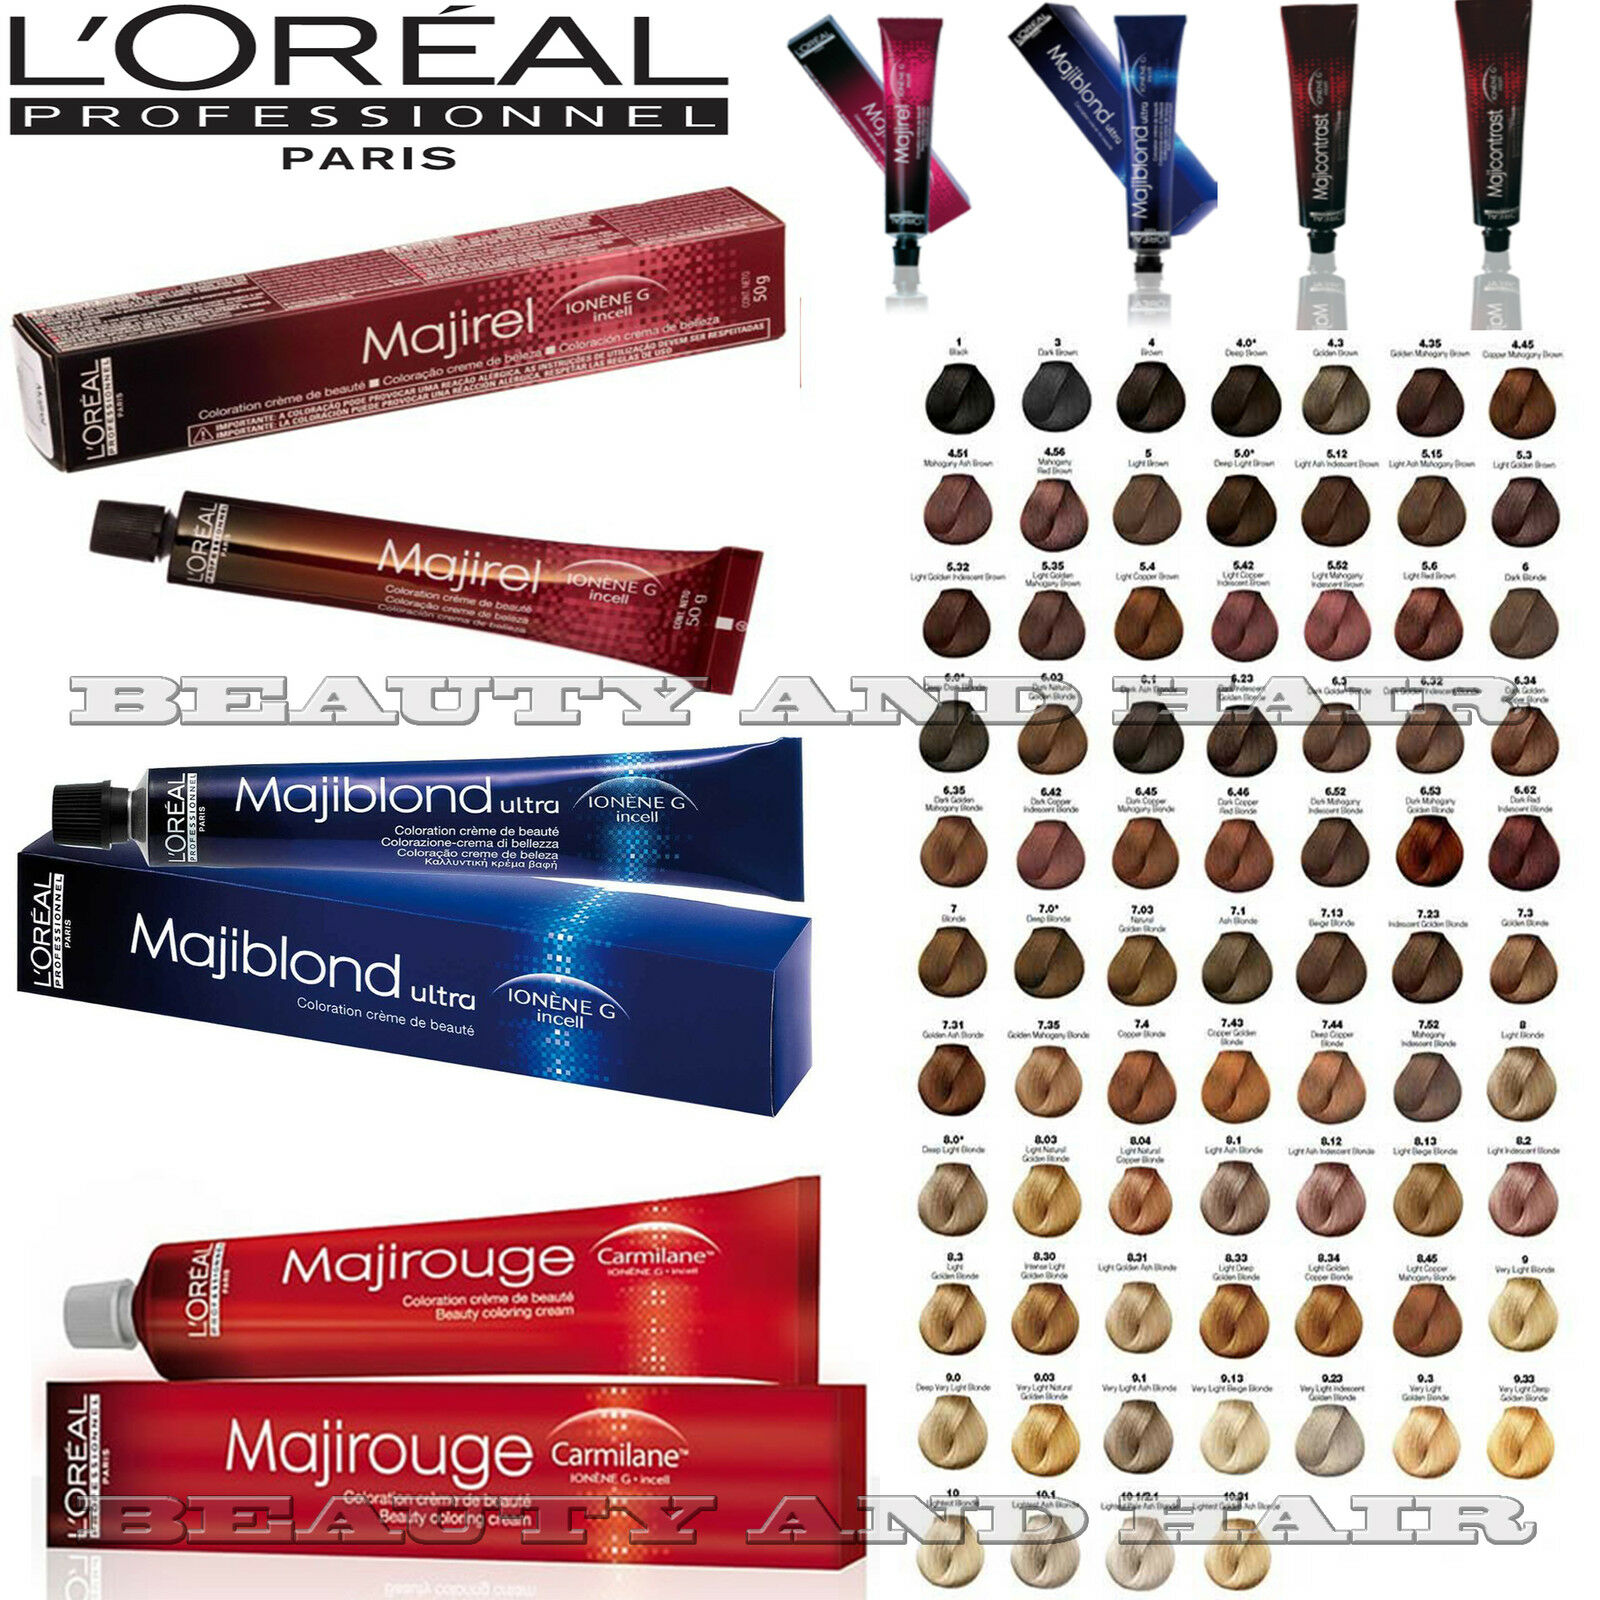 Majirel colour chart - Sell It Yourself Details About La Girl Pro Hd Bb Cream Prime Moisturize Enhance You Choose Shade Uk Seller